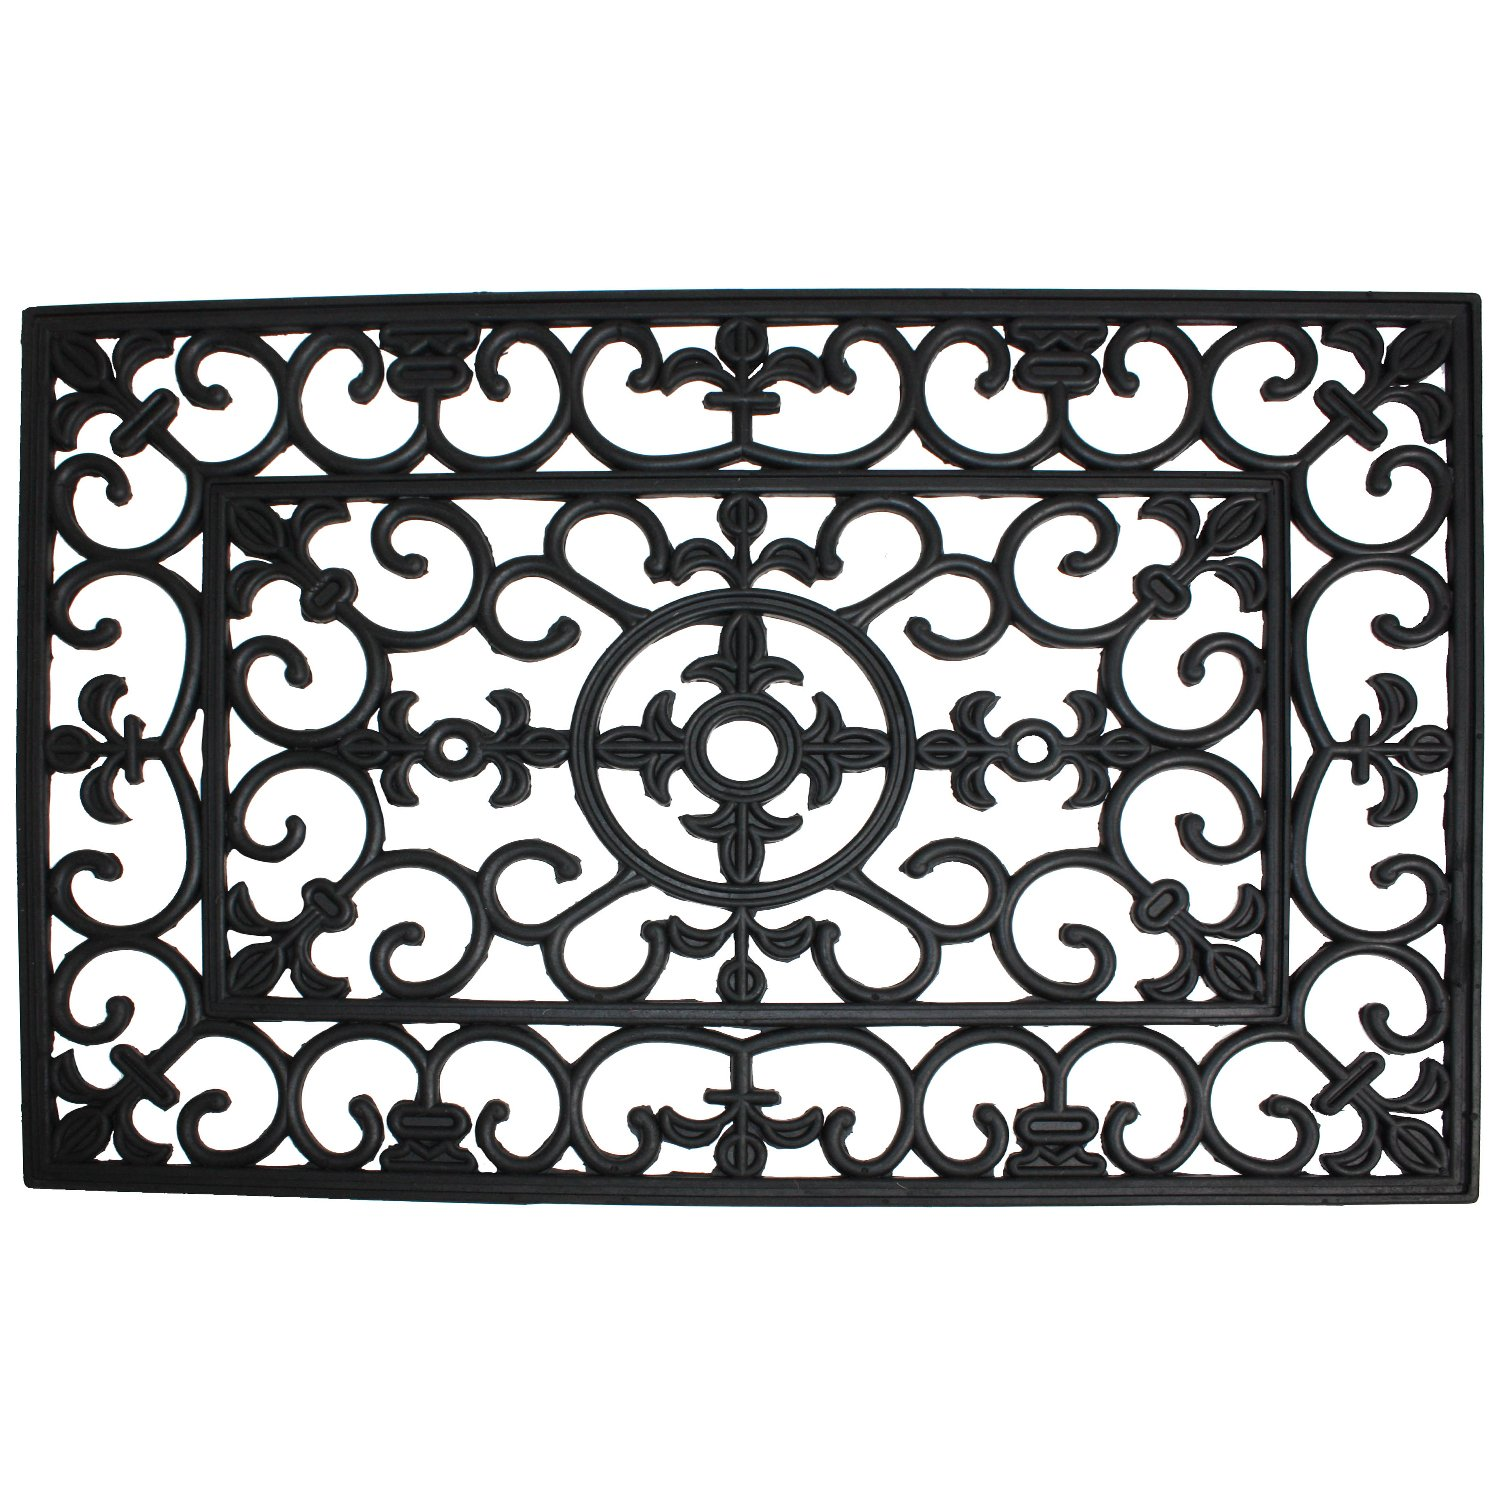 Amazon.com: J U0026 M Home Fashions Wrought Iron Natural Rubber Doormat,  24 Inch By 36 Inch: Home U0026 Kitchen